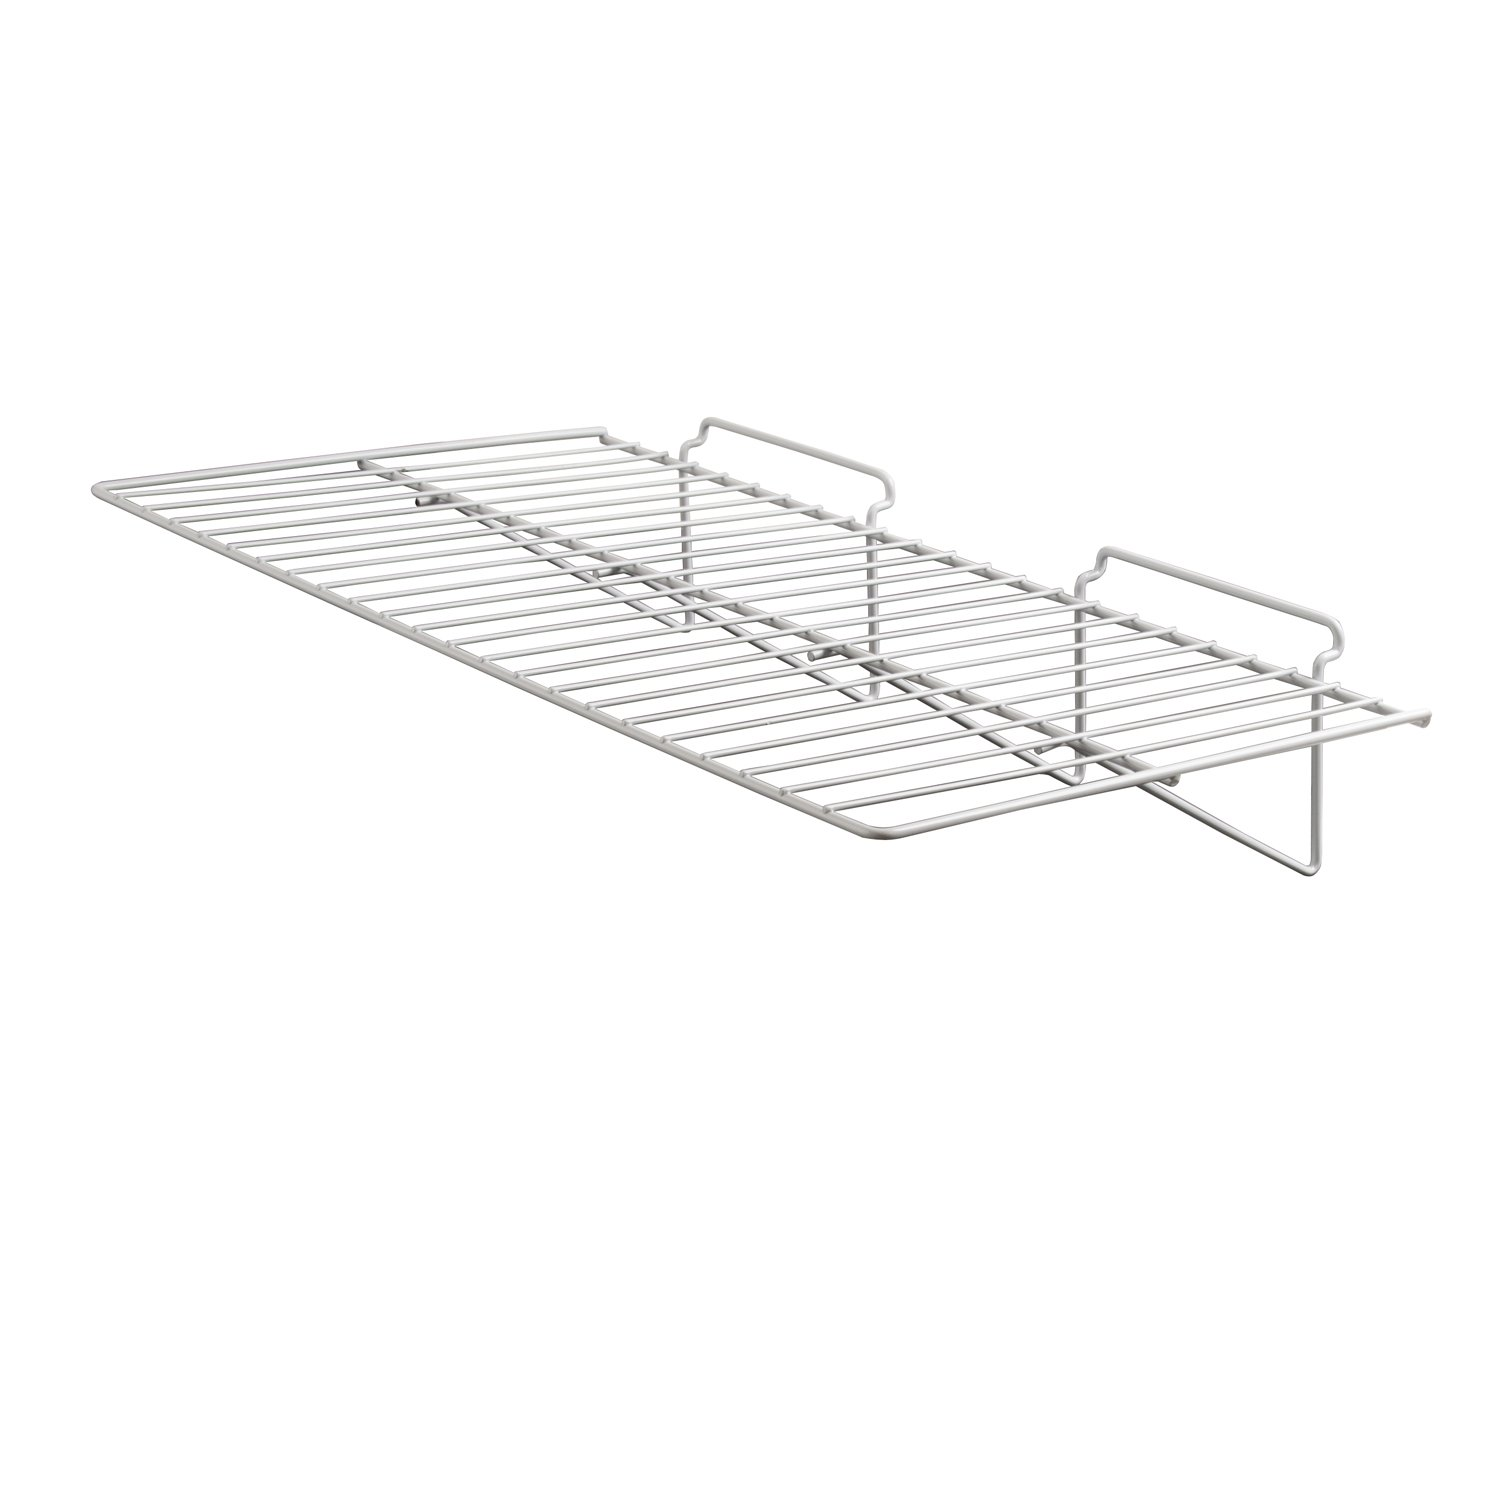 Econoco Commercial Straight Shelf, 24'' Width x 12'' Depth, White (Pack of 6)